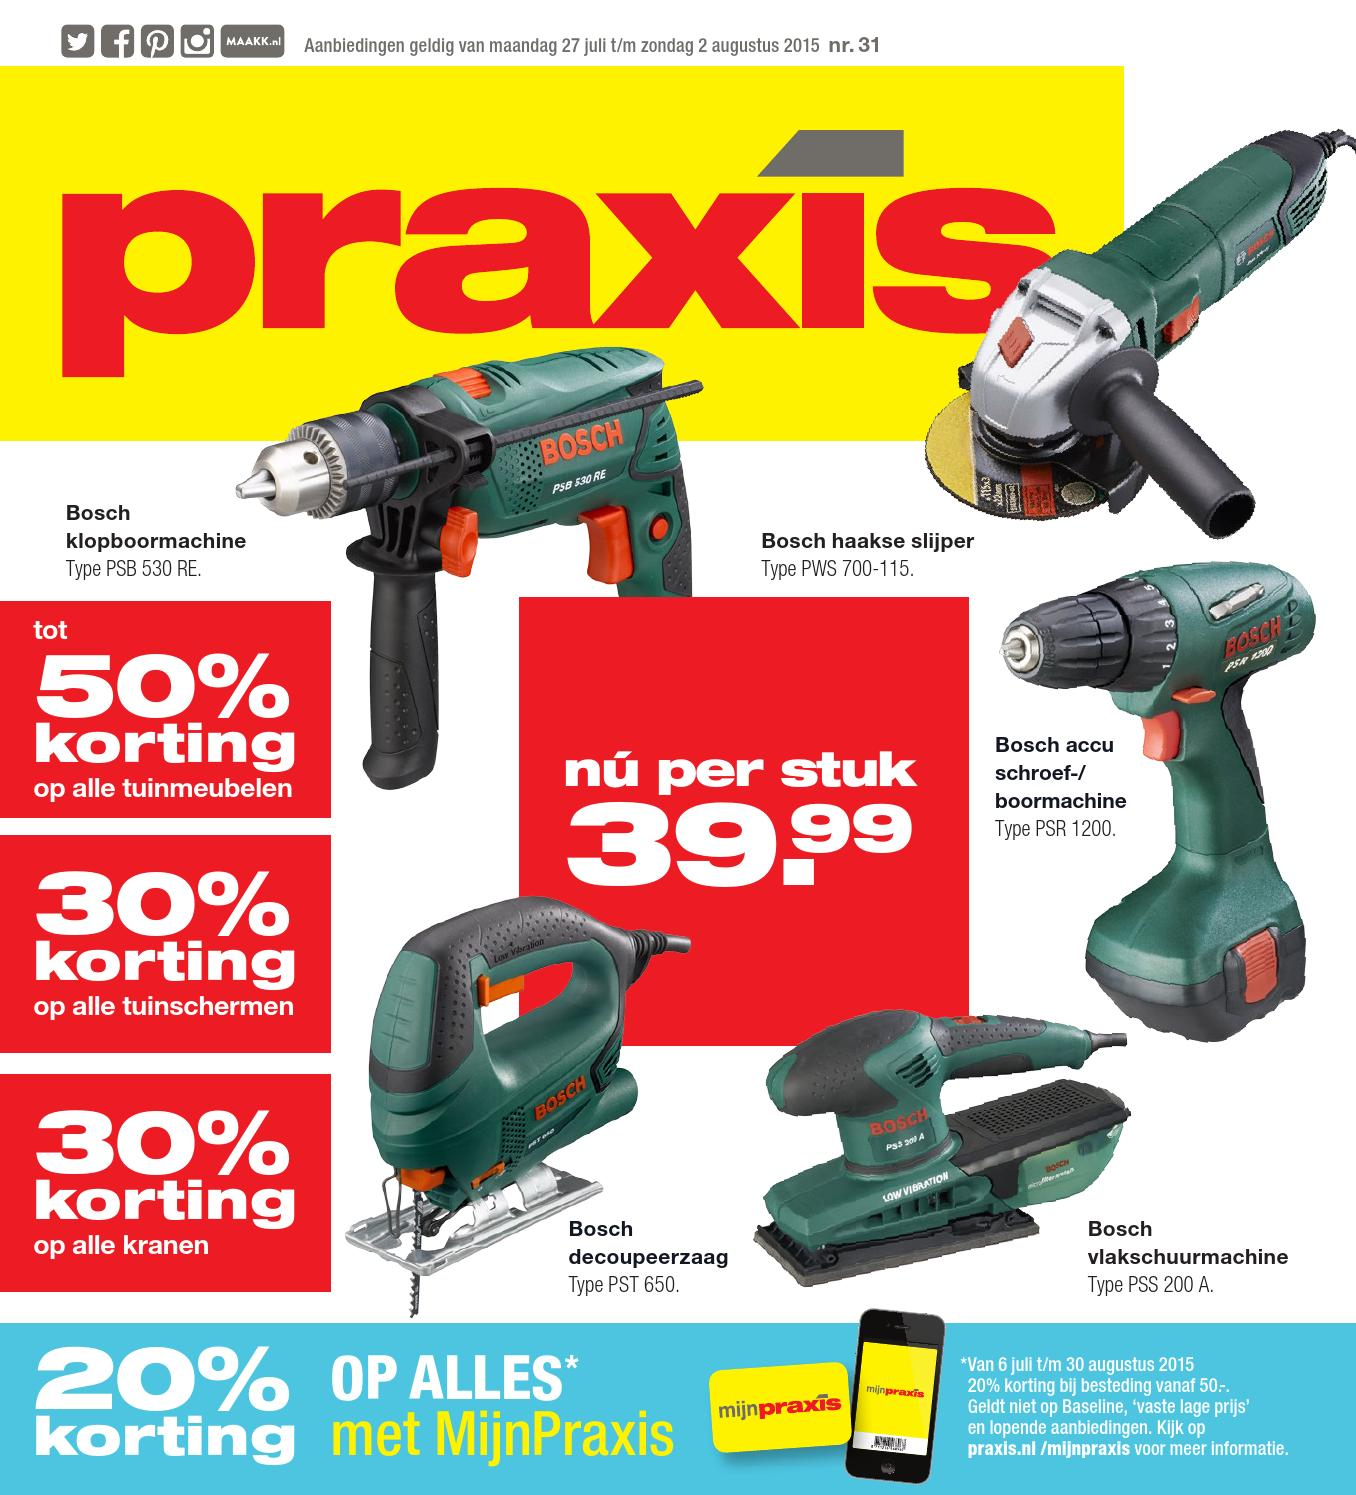 Bosch Borenset Praxis Folder Week 31 2015 By Online Folders Issuu